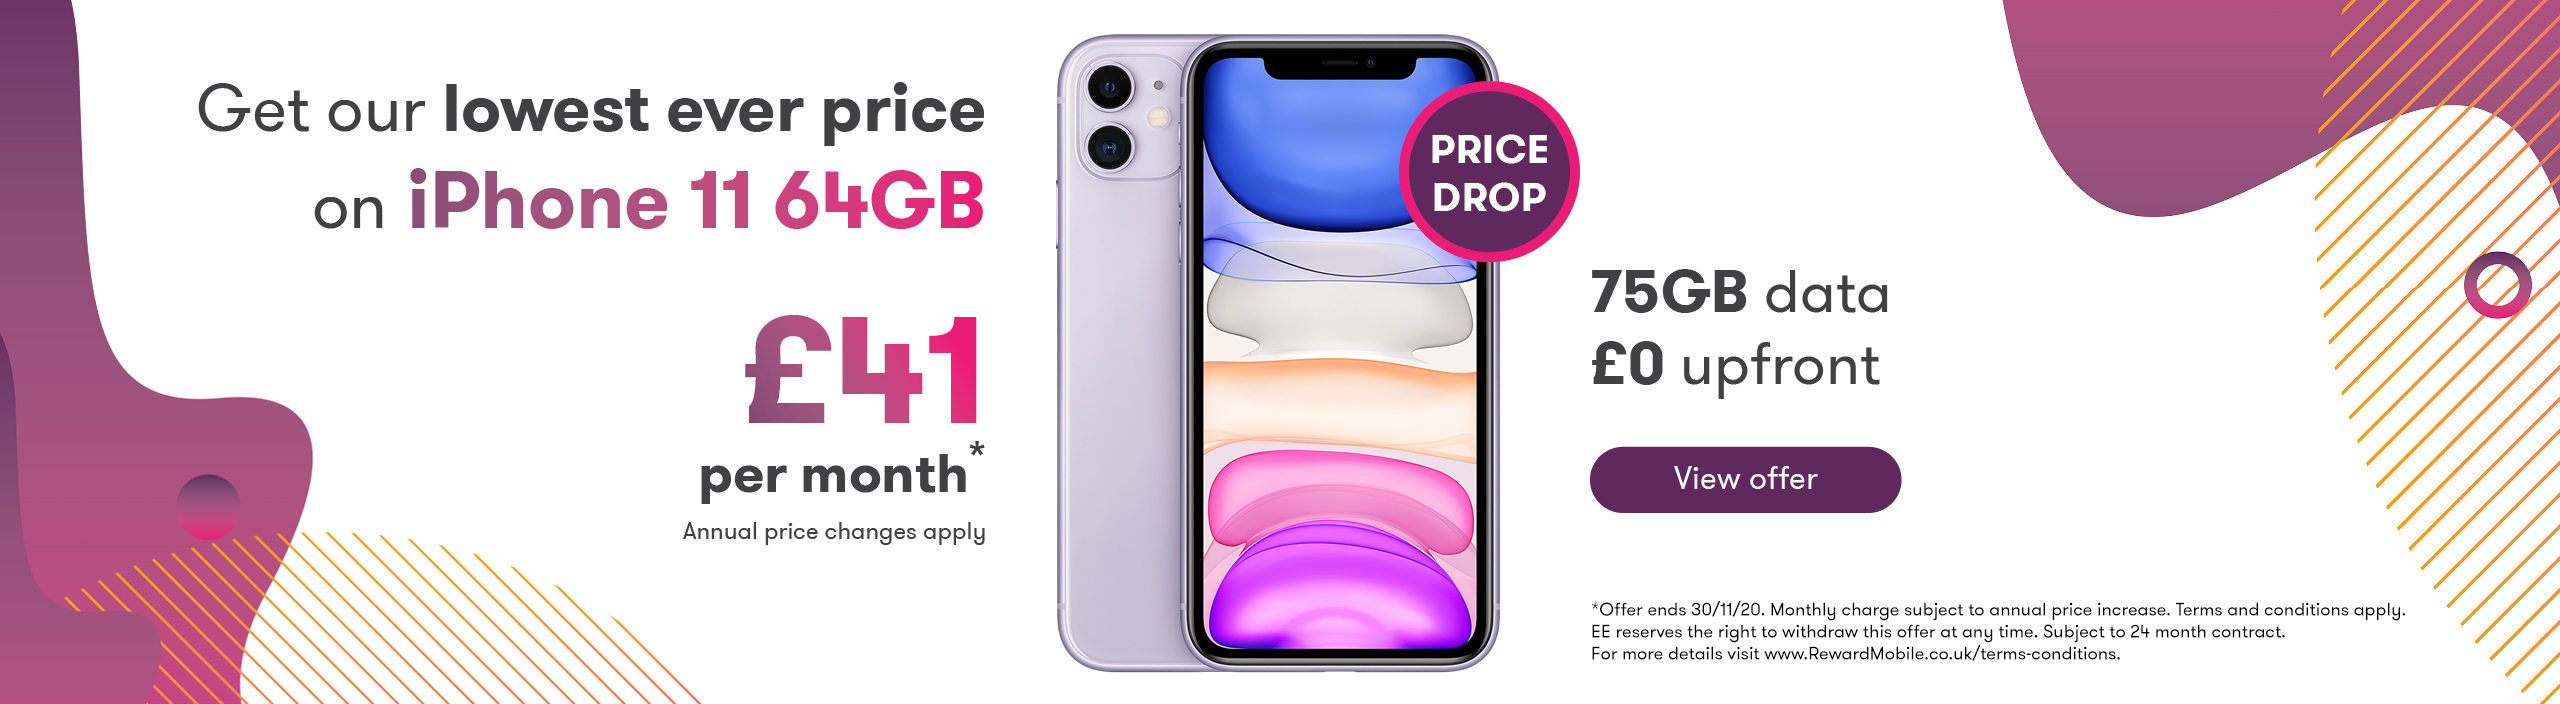 iPhone 11 Price drop web banner offer